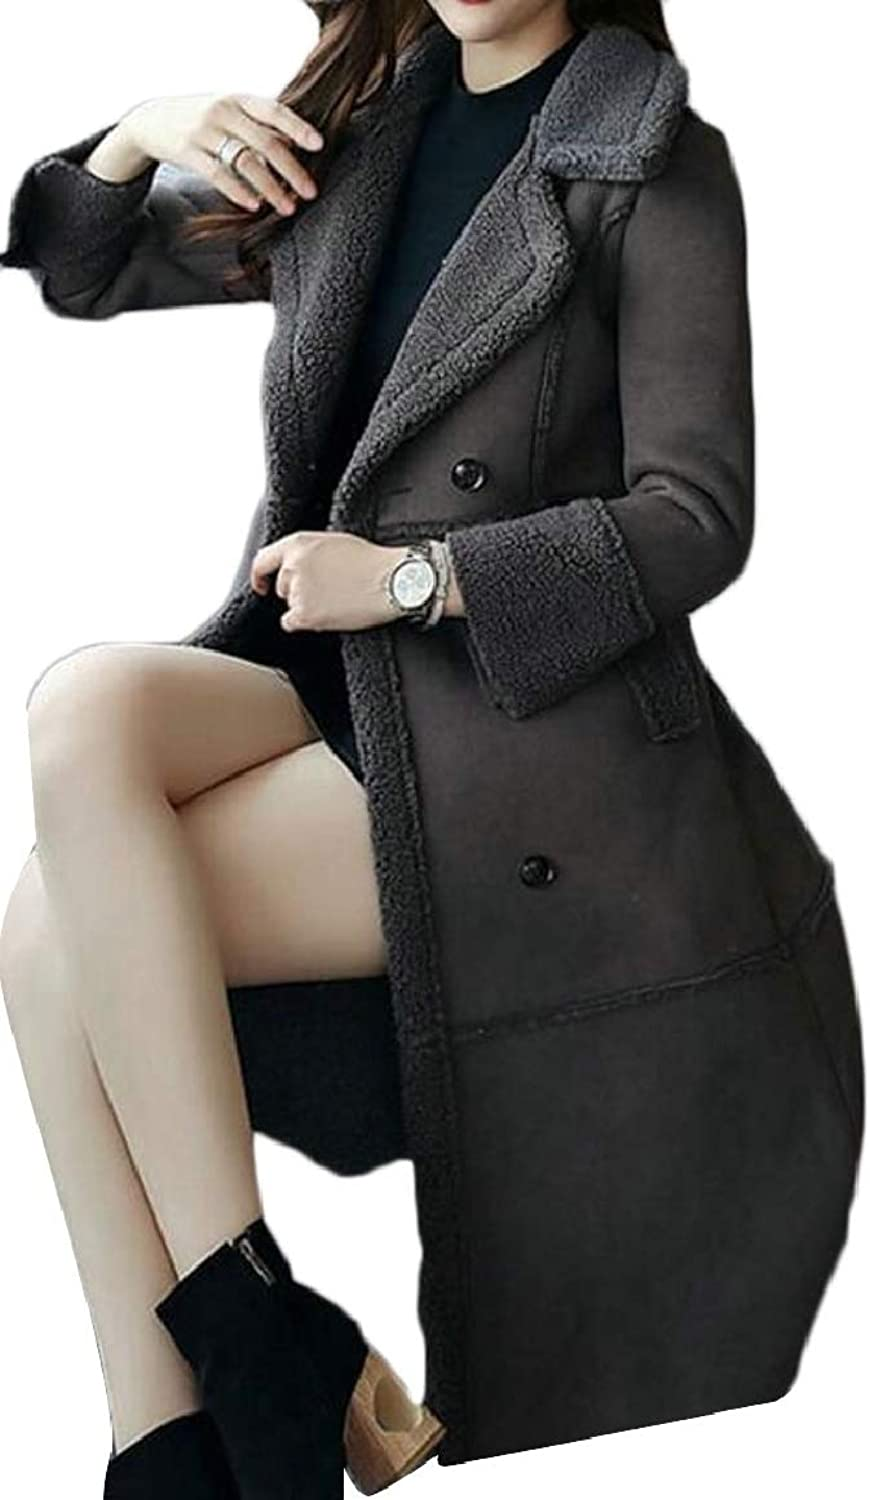 RGCA Women's Winter Lapel Faux Fur FleeceLined Double Breasted Jacket Coat